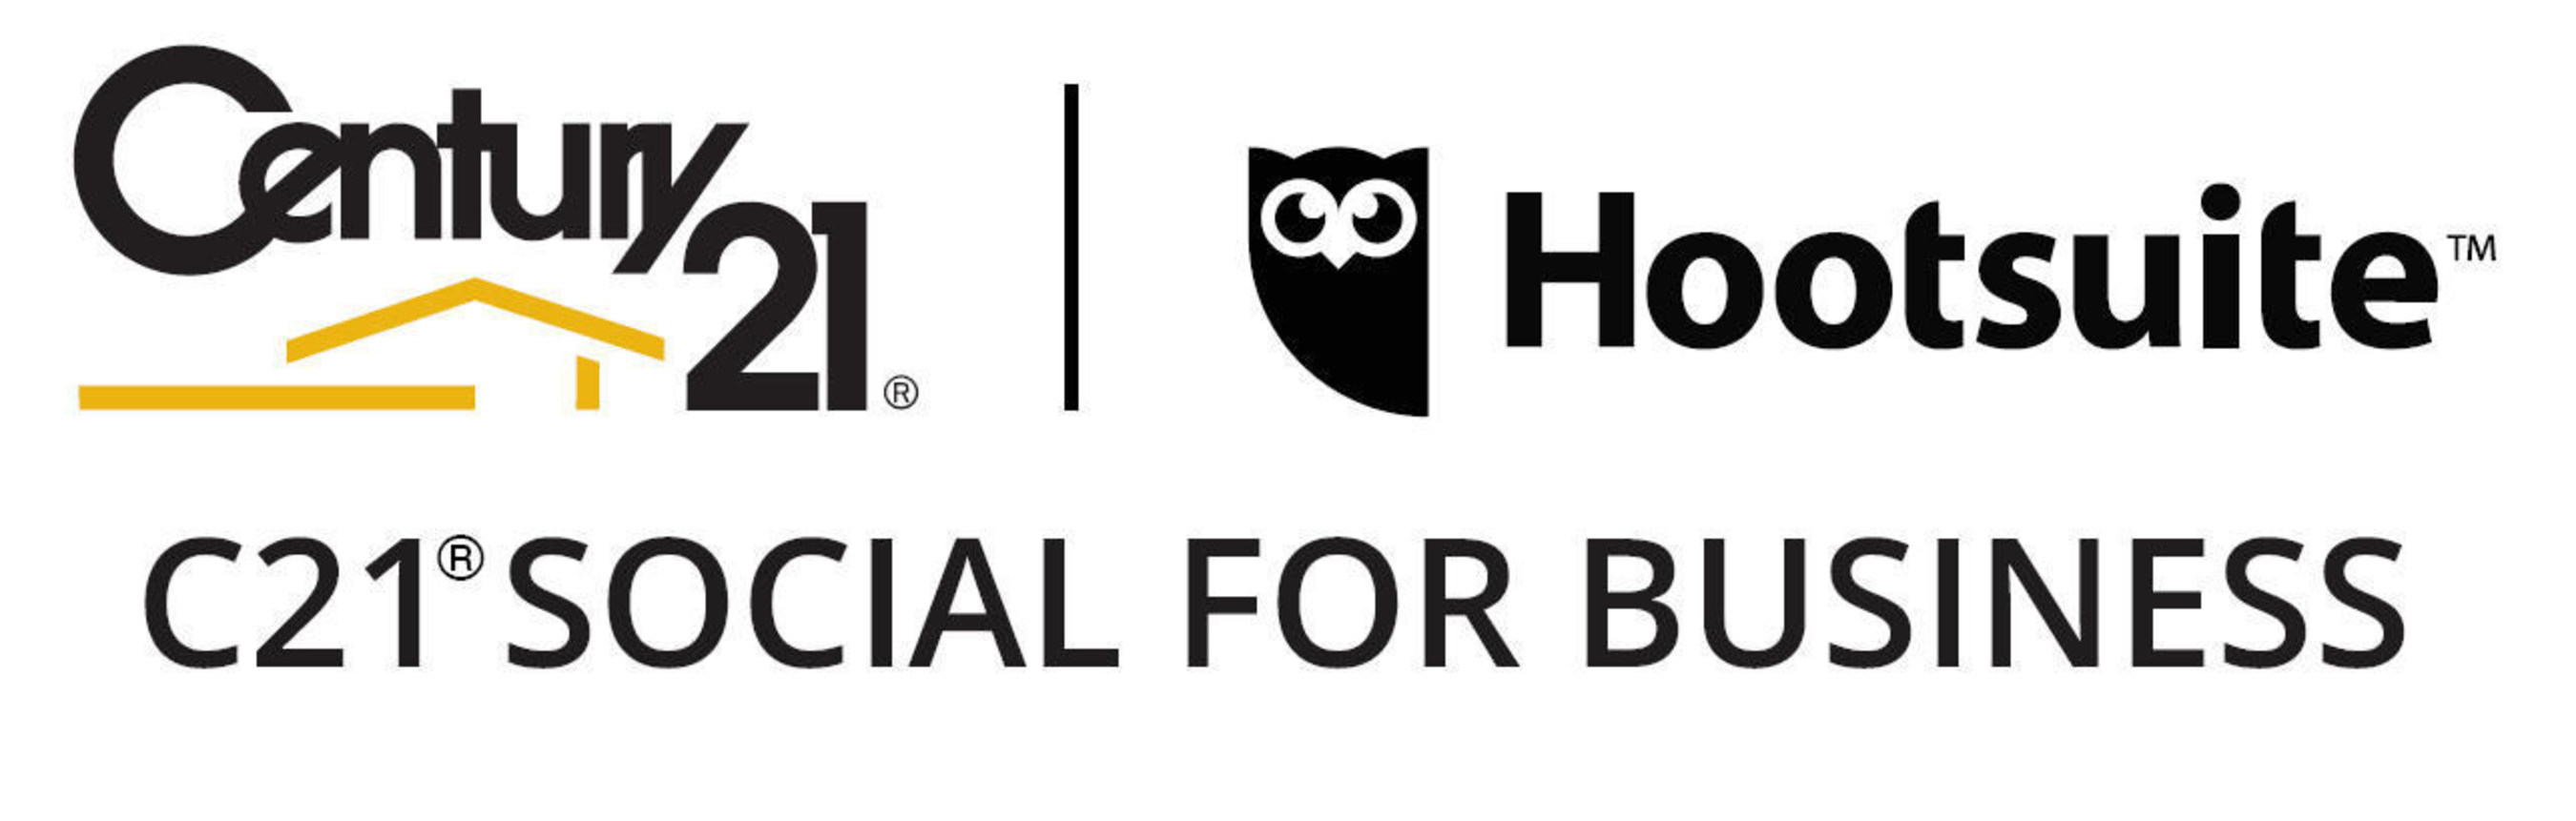 CENTURY 21 Real Estate and Hootsuite